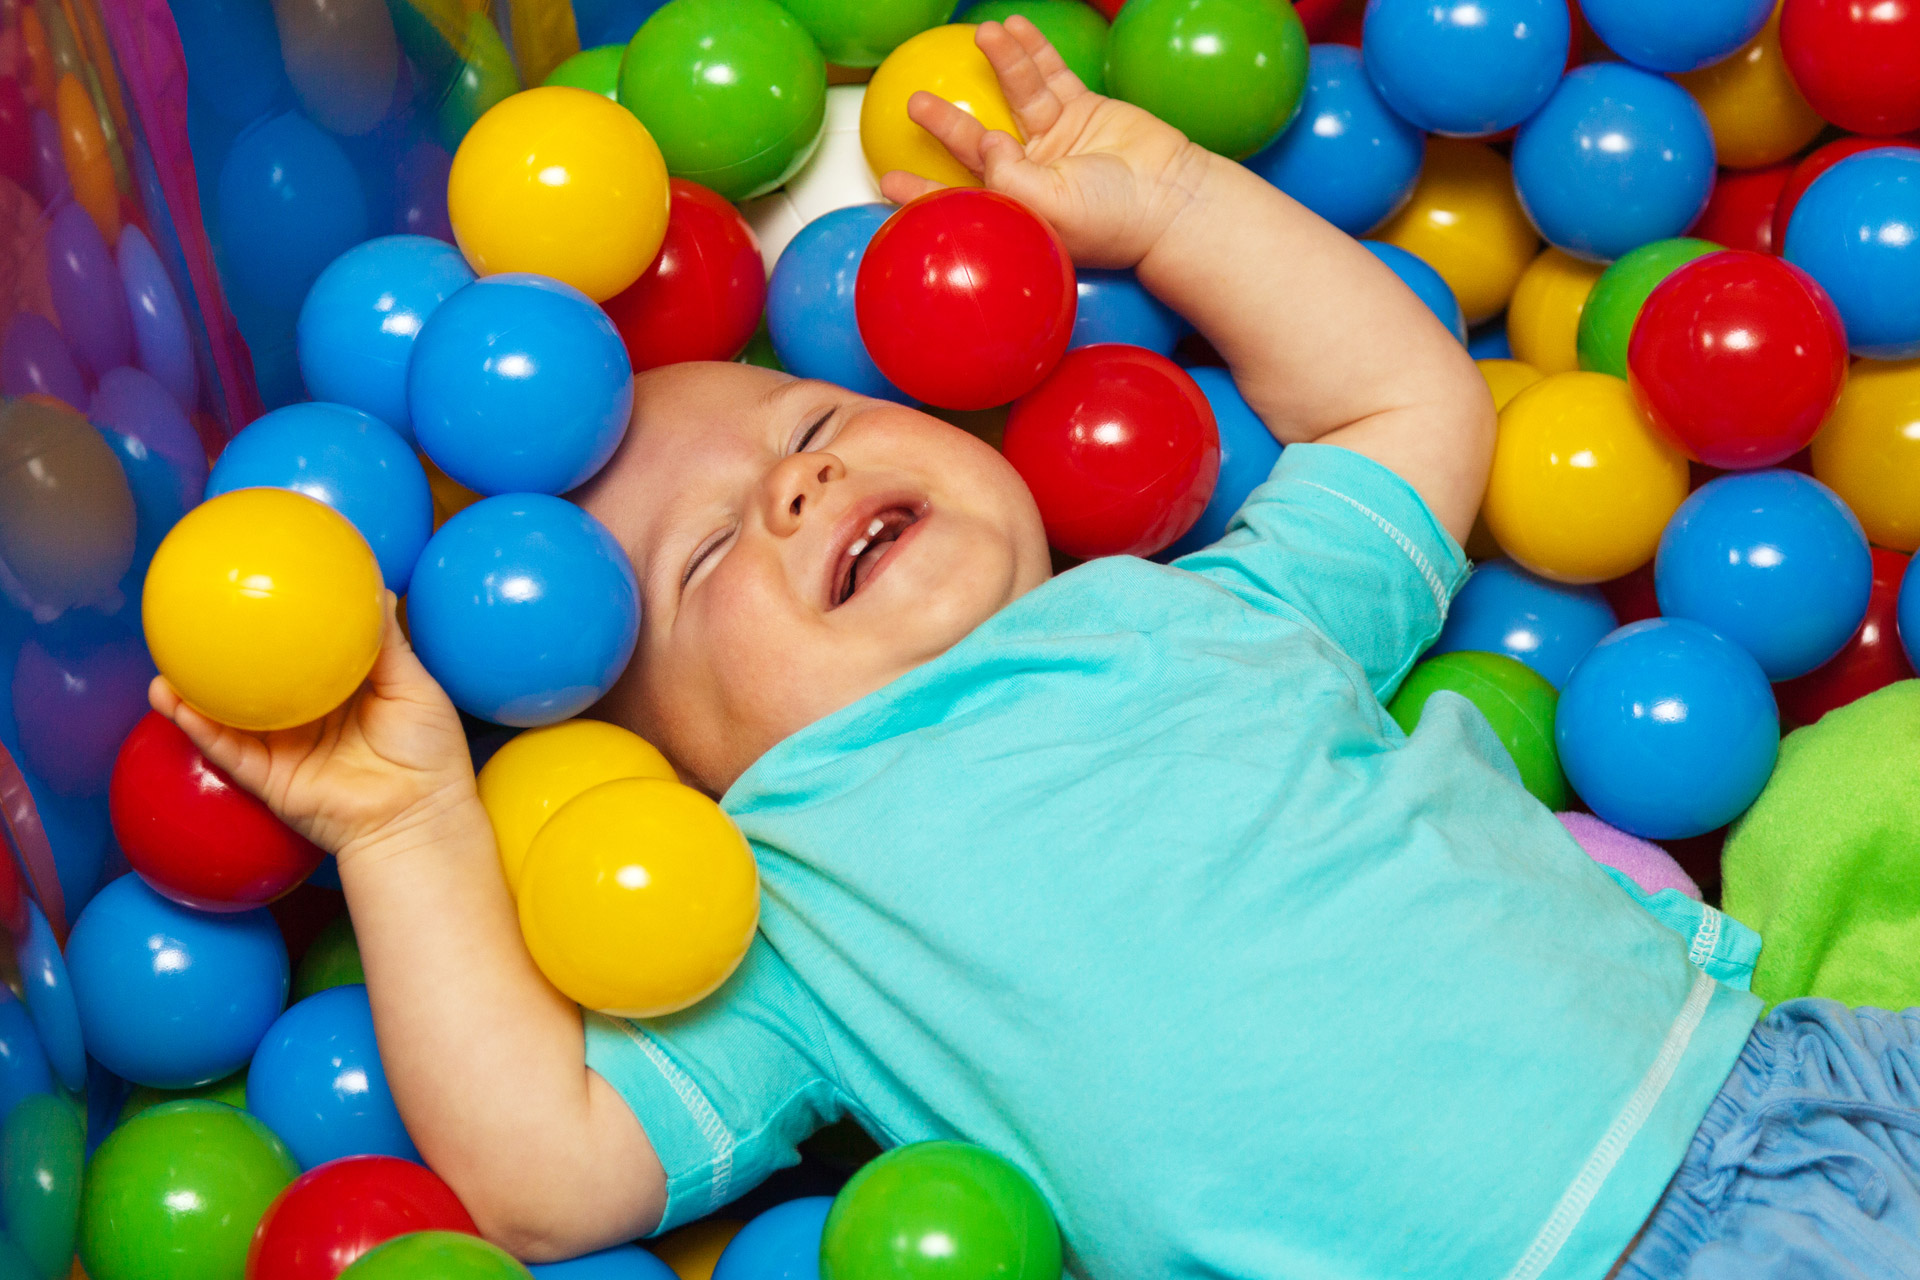 Amazing Balls Pictures & Backgrounds